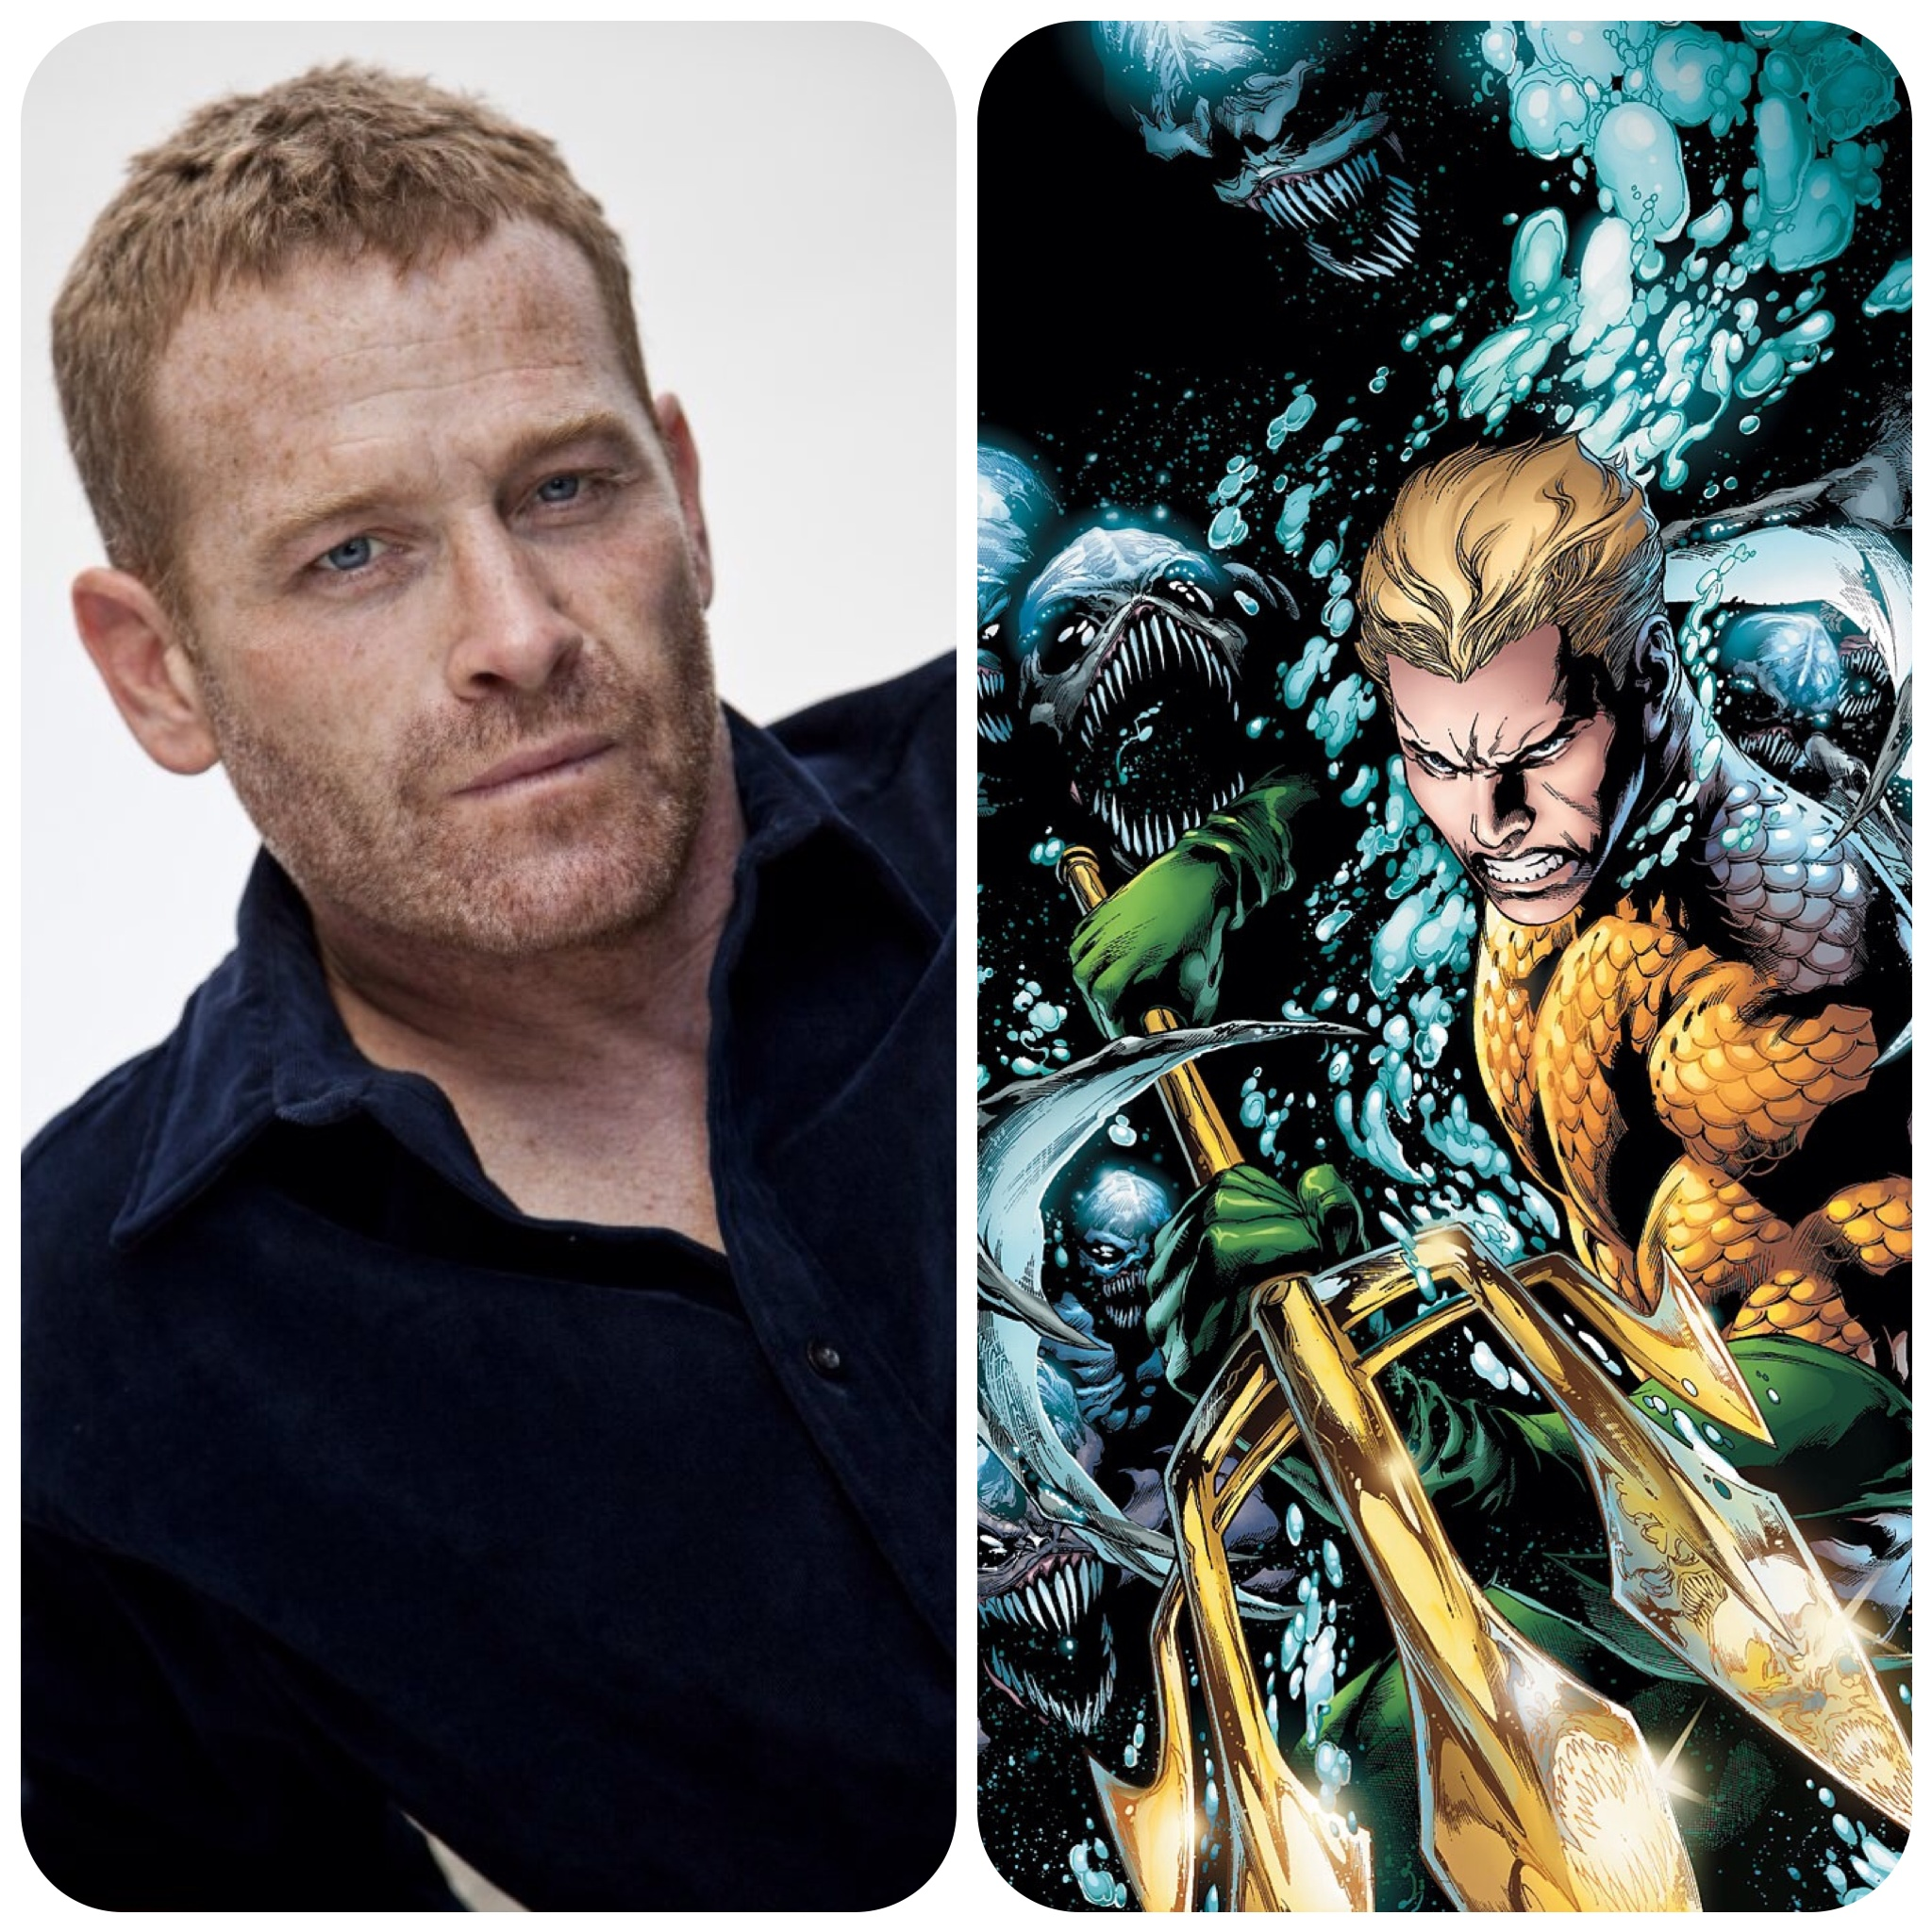 Dreamcasting With Denise Justice League Aquaman Arthur Curry Max Martini